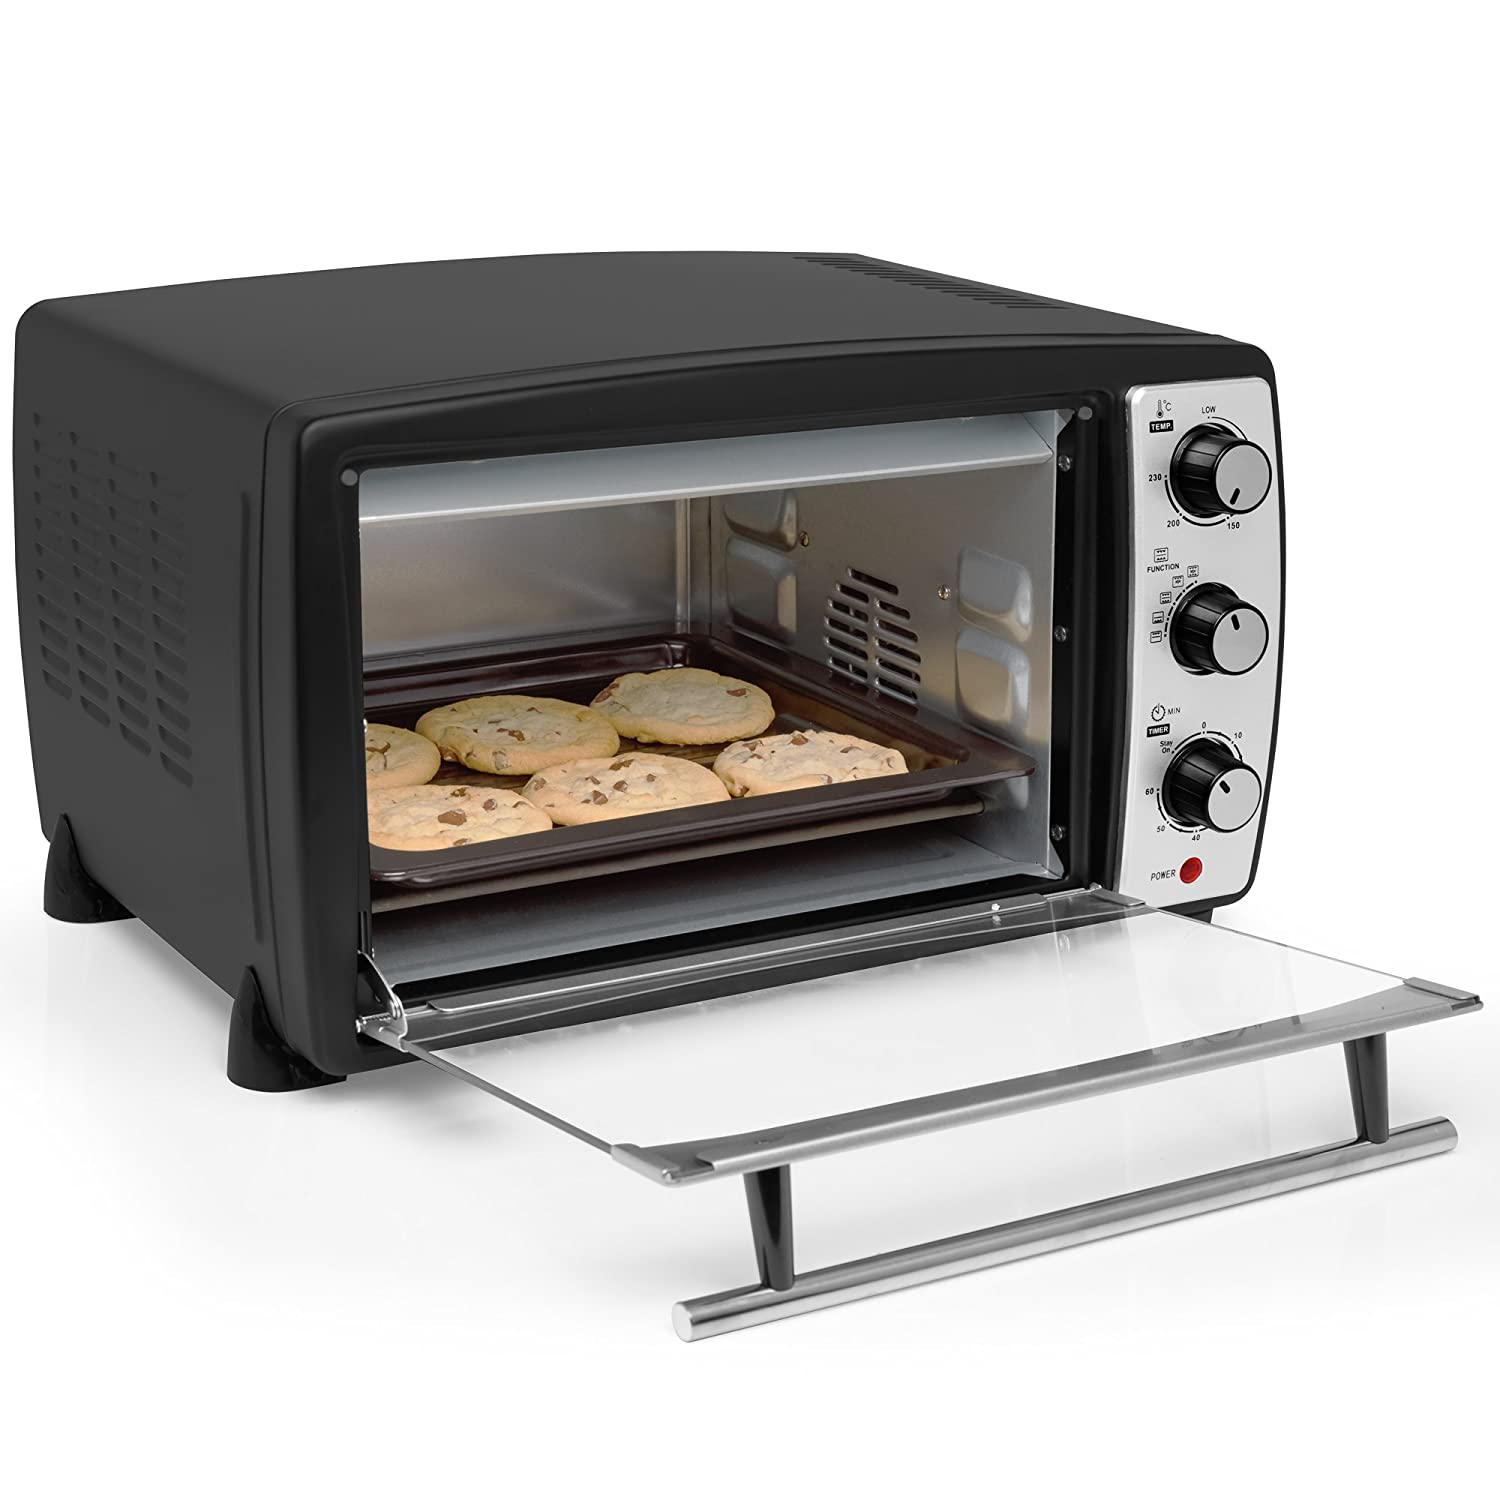 Andrew James Mini Oven Electric Cooker And Grill 20l Fast Heating Argos Hob Toaster Ovens At 230c With Timer Rack Baking Tray Small Enough For Table Top Use